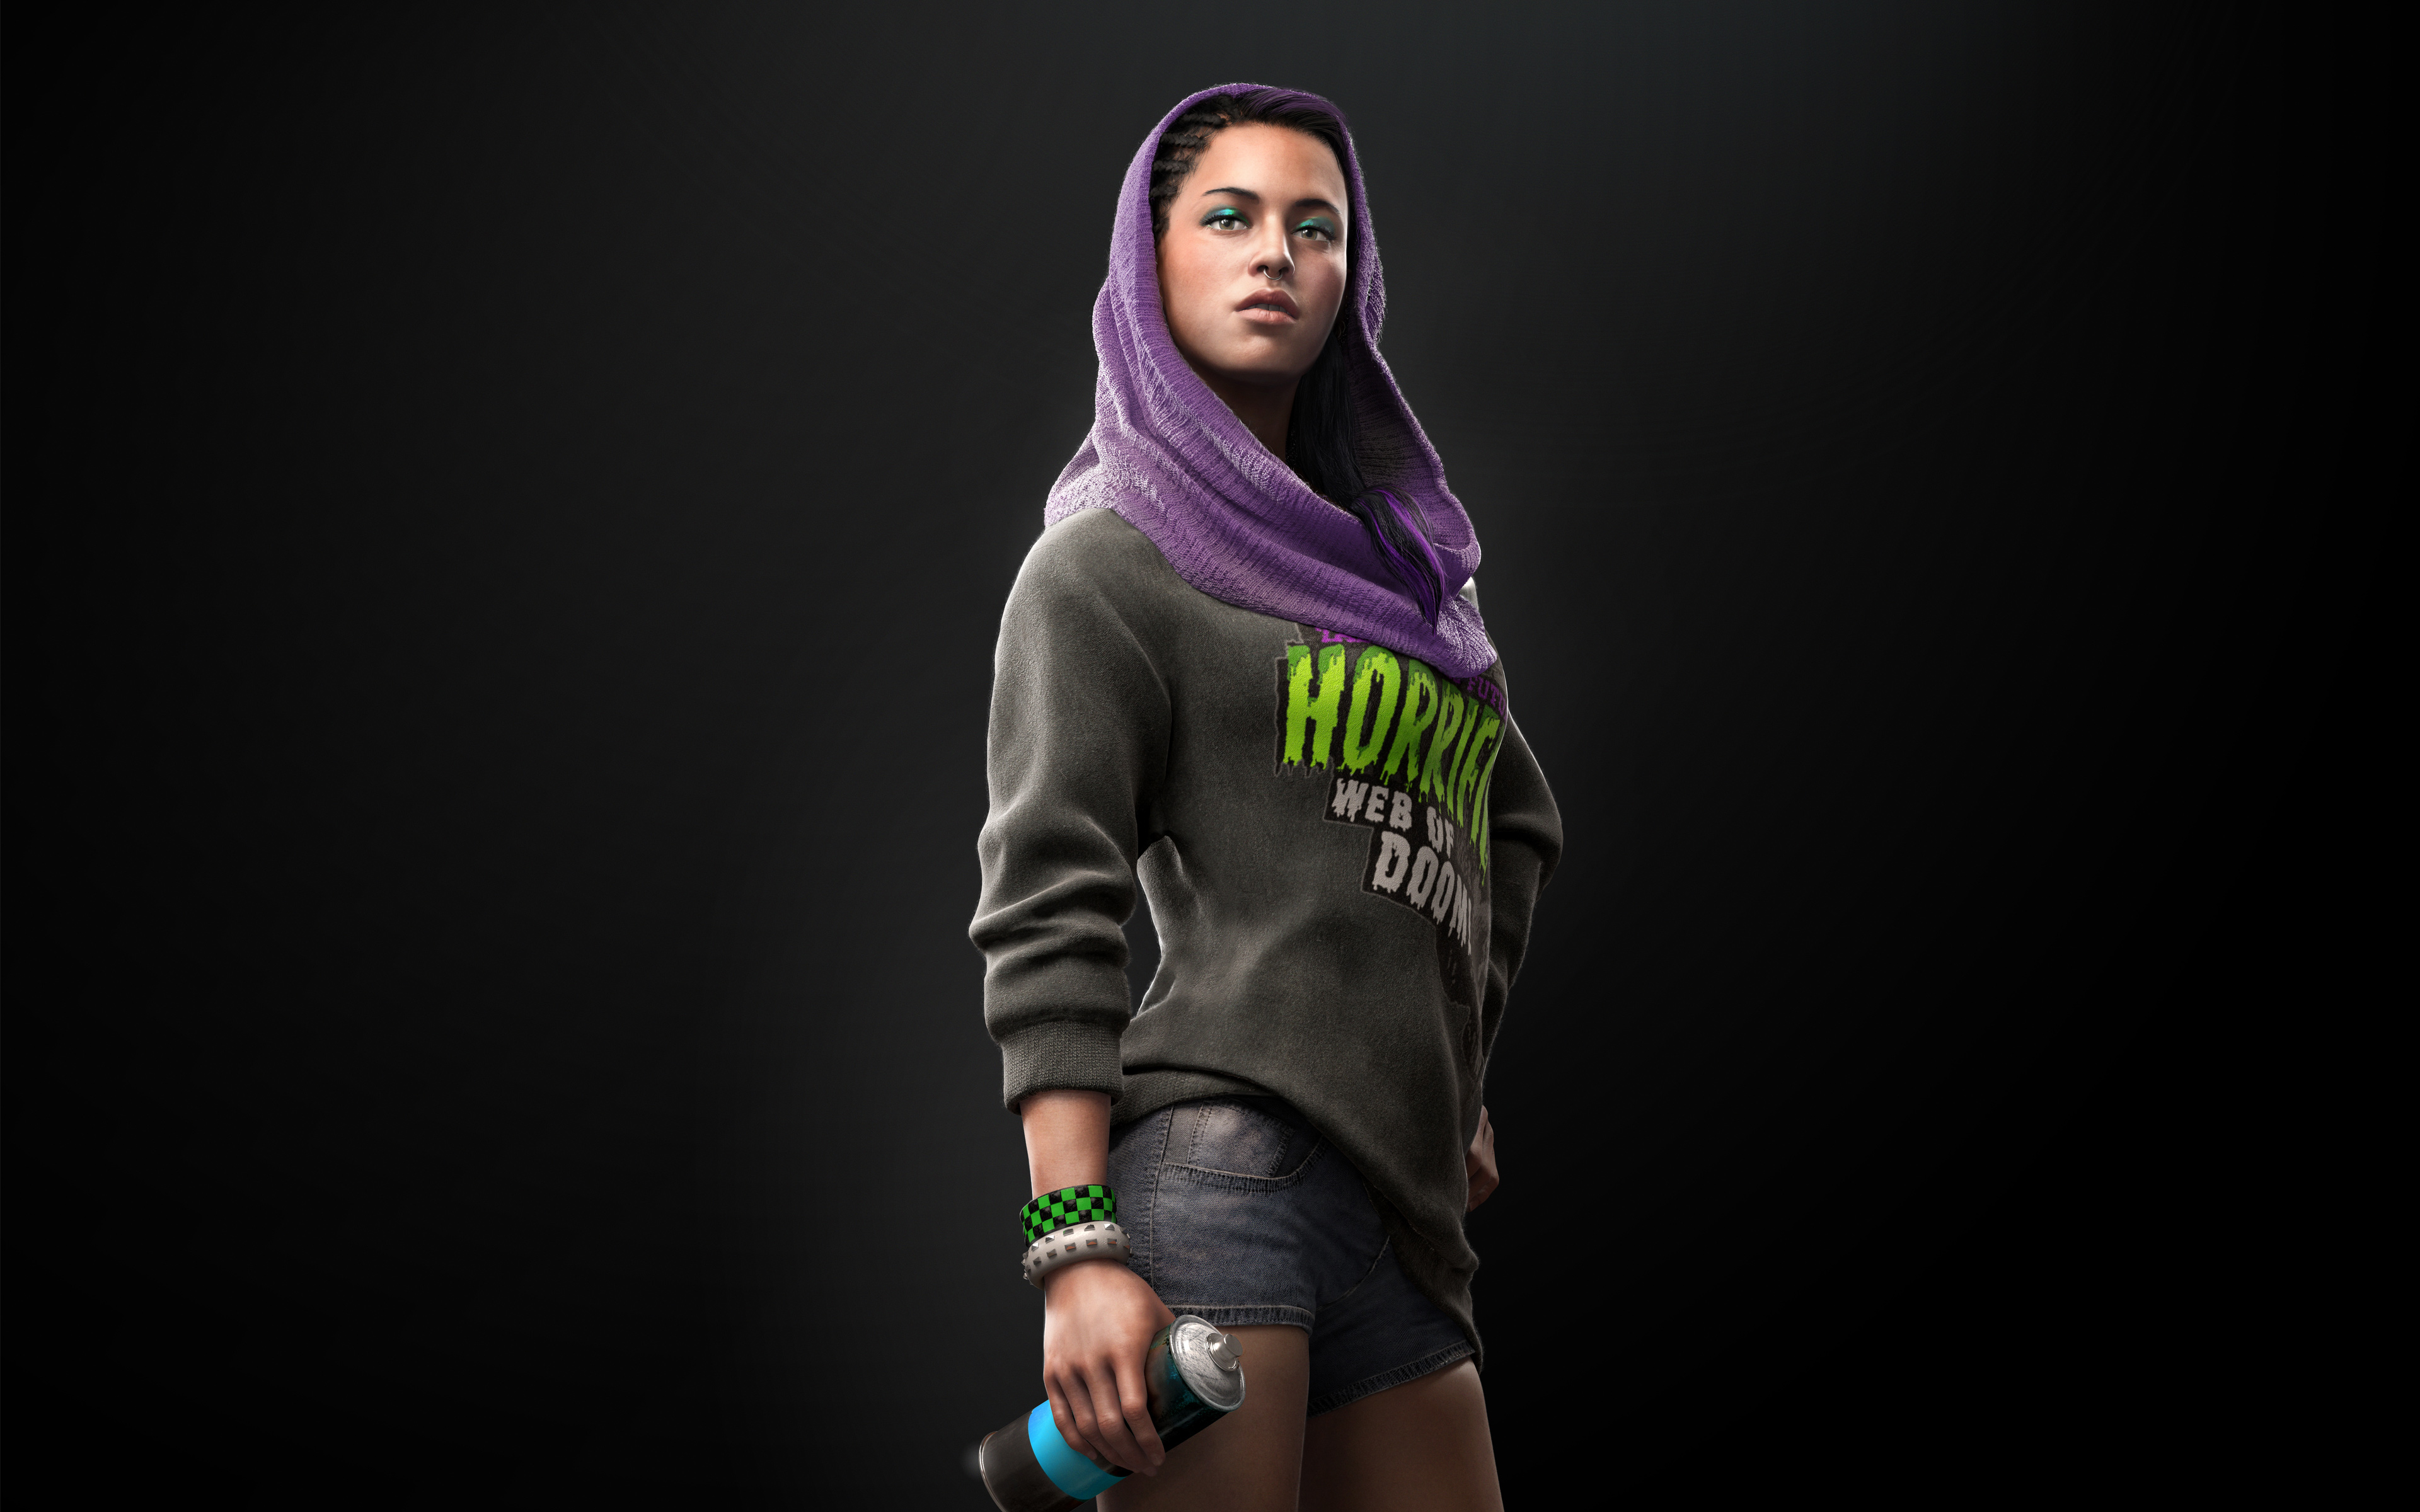 Download 3840x2400 Wallpaper Watch Dogs 2 Girl Scarf Video Game